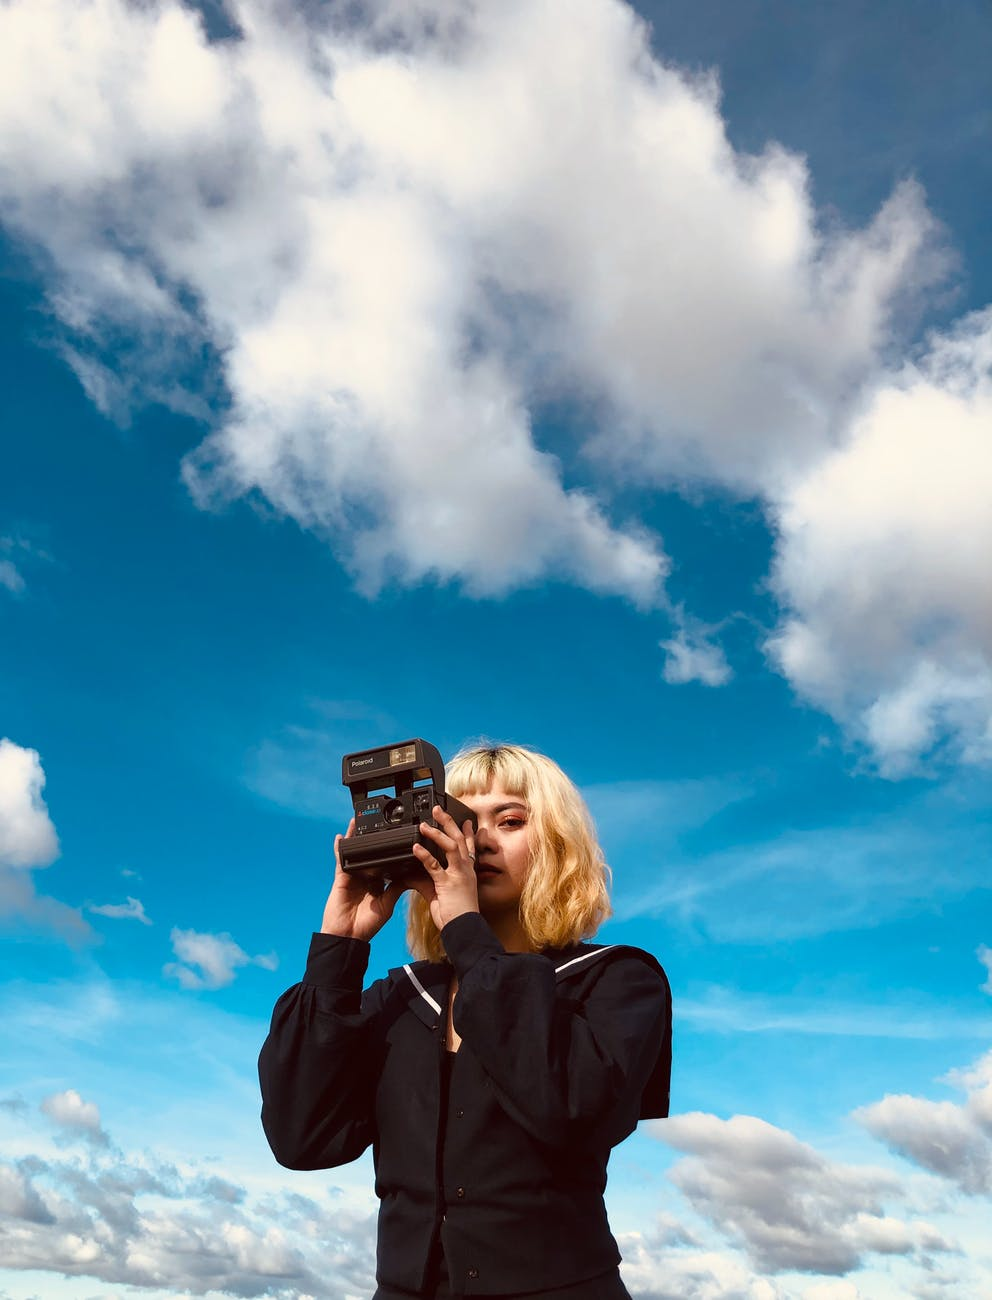 female with instant camera against blue sky